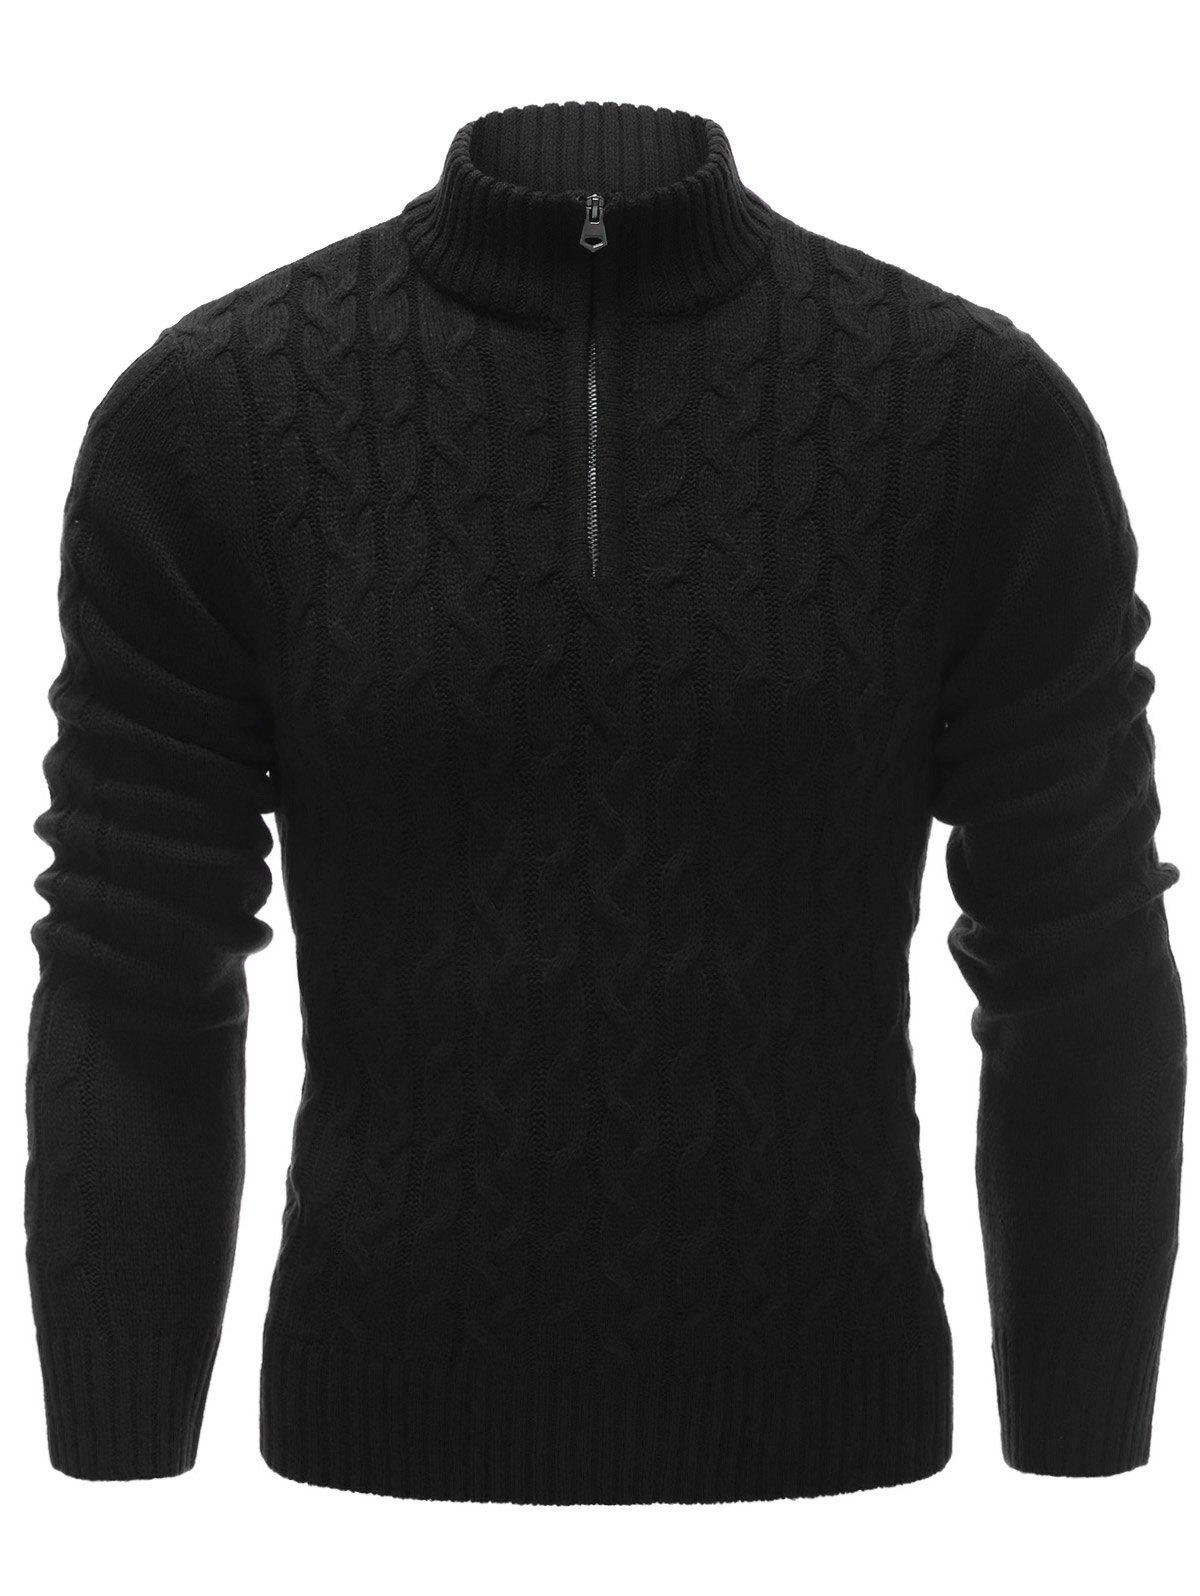 Half Zip Up Cable Knit Pullover SweaterMEN<br><br>Size: M; Color: BLACK; Type: Pullovers; Material: Polyester; Sleeve Length: Full; Collar: Stand Collar; Technics: Computer Knitted; Style: Fashion; Weight: 0.559kg; Package Contents: 1 x Sweater;